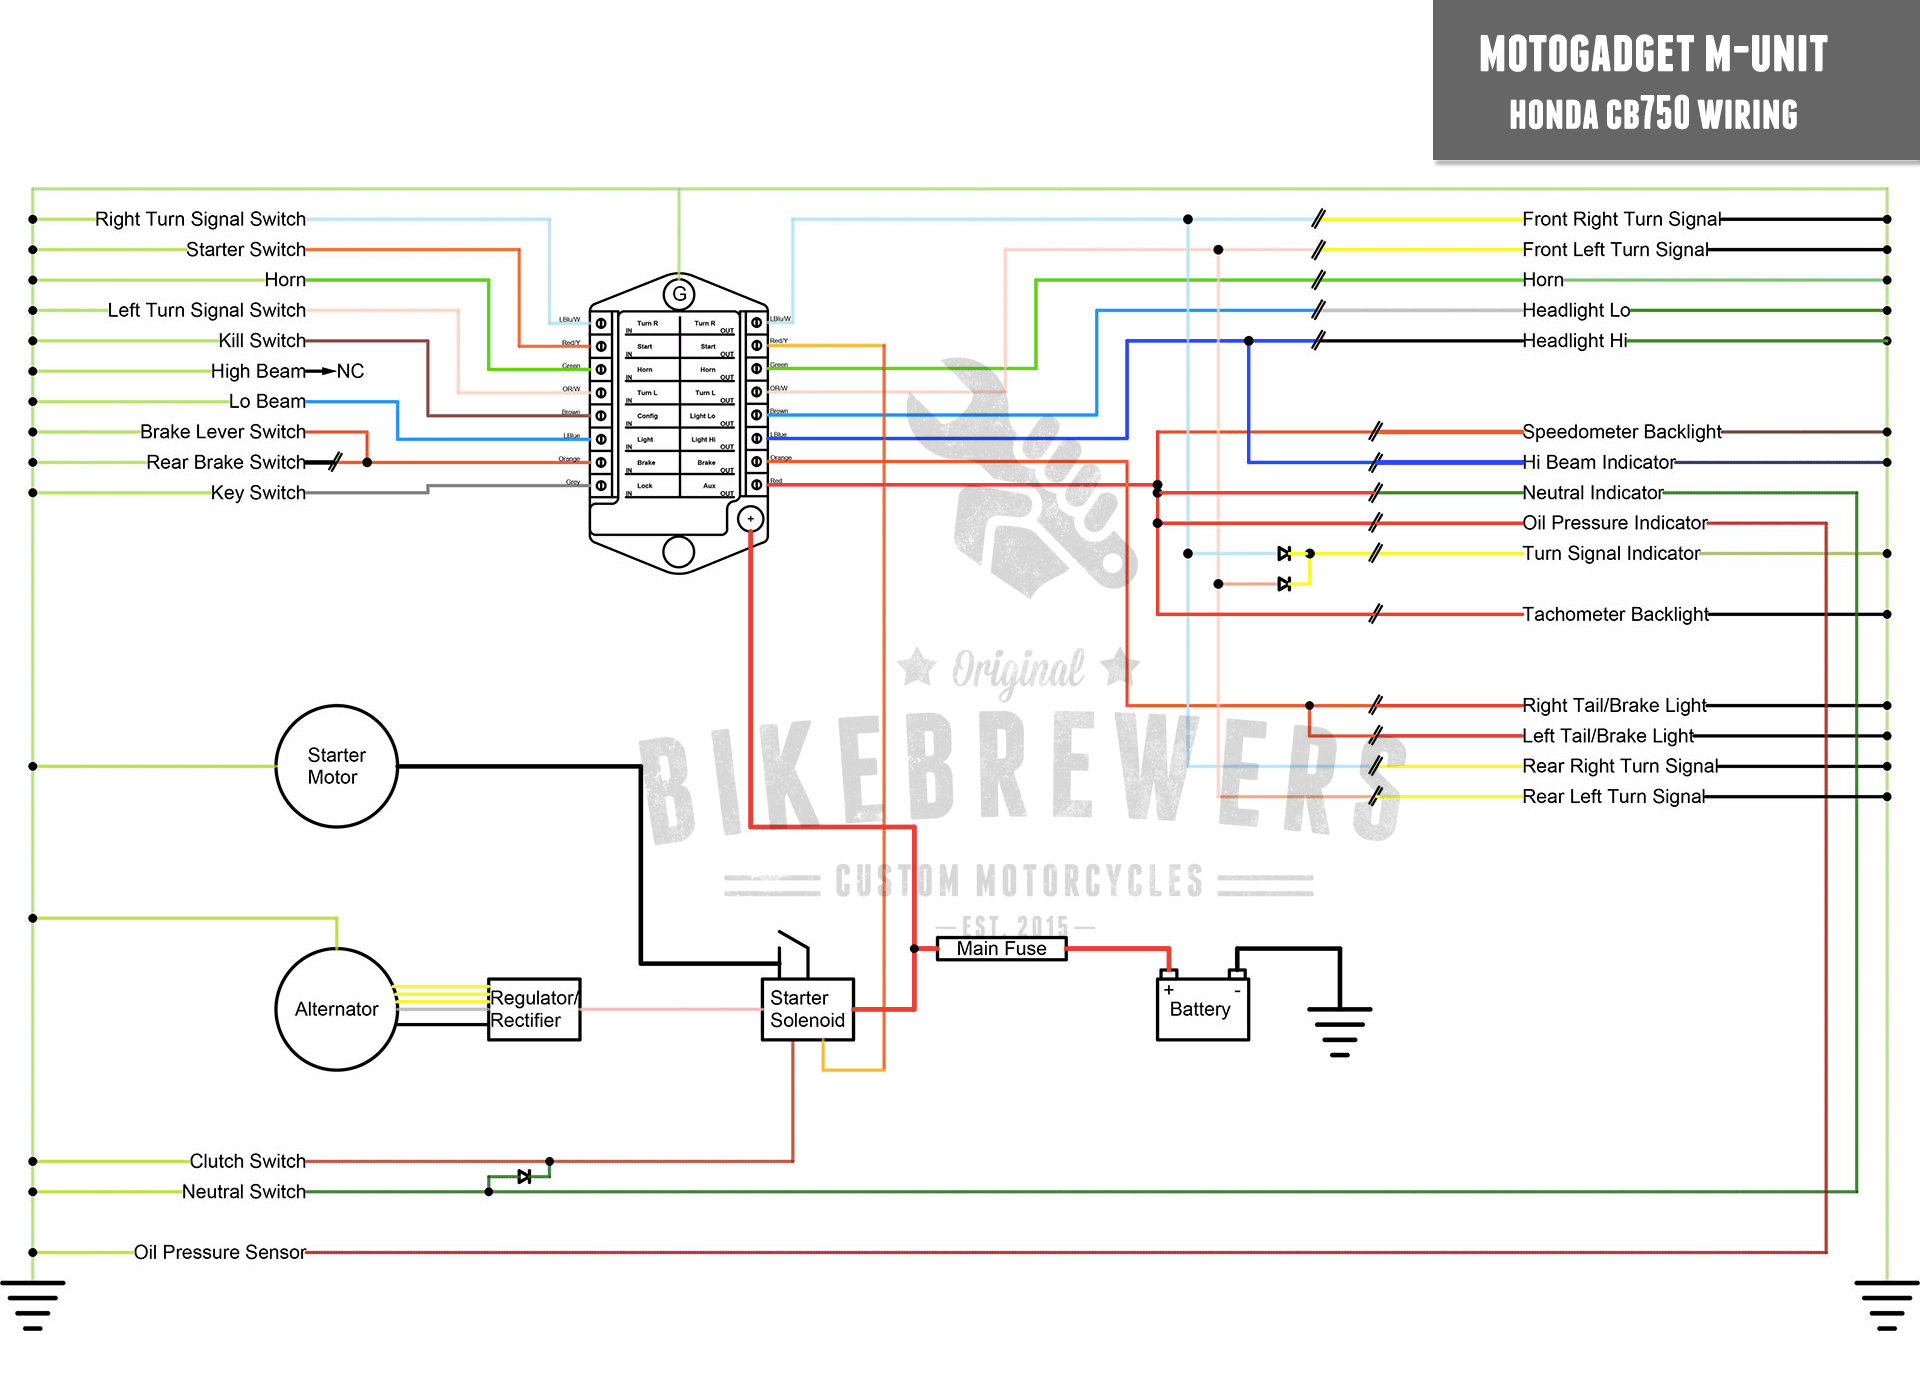 MotoGadget Wiring Honda CB750 motogadget m unit wiring bikebrewers com moto guzzi v7 wiring diagram at bayanpartner.co